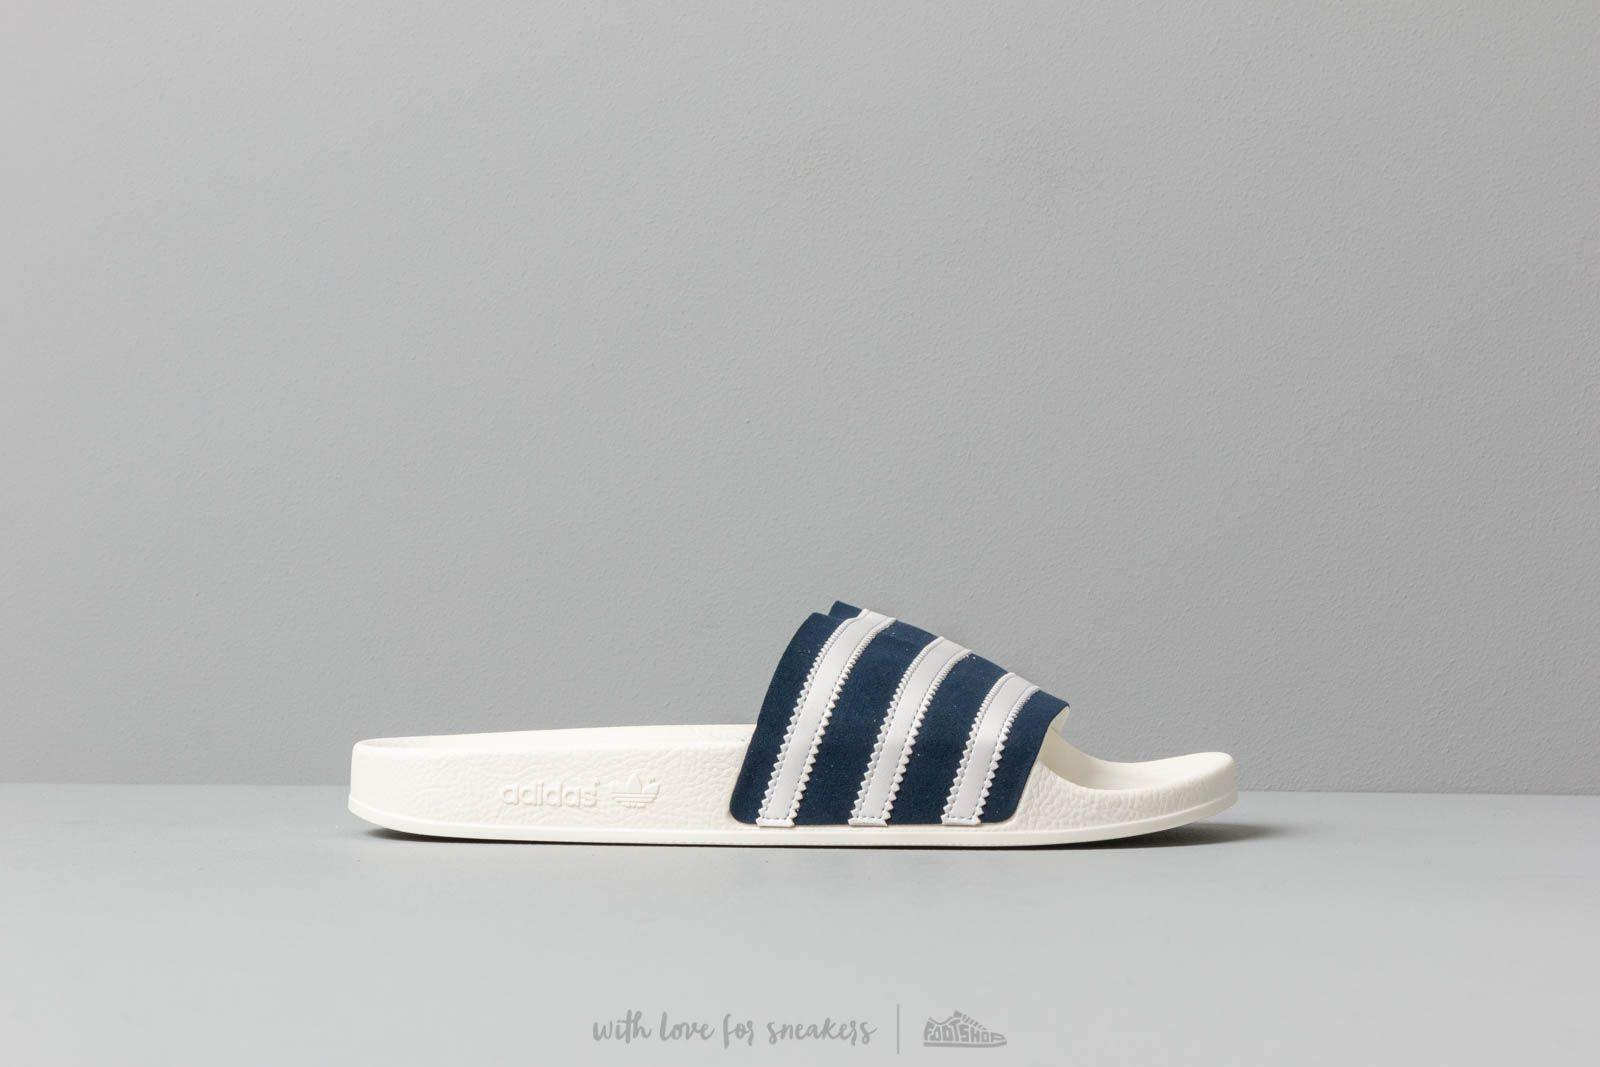 88013aeaf1ea Adidas Originals - Adidas Adilette Collegiate Navy  Ftw White  Off White  for Men -. View fullscreen